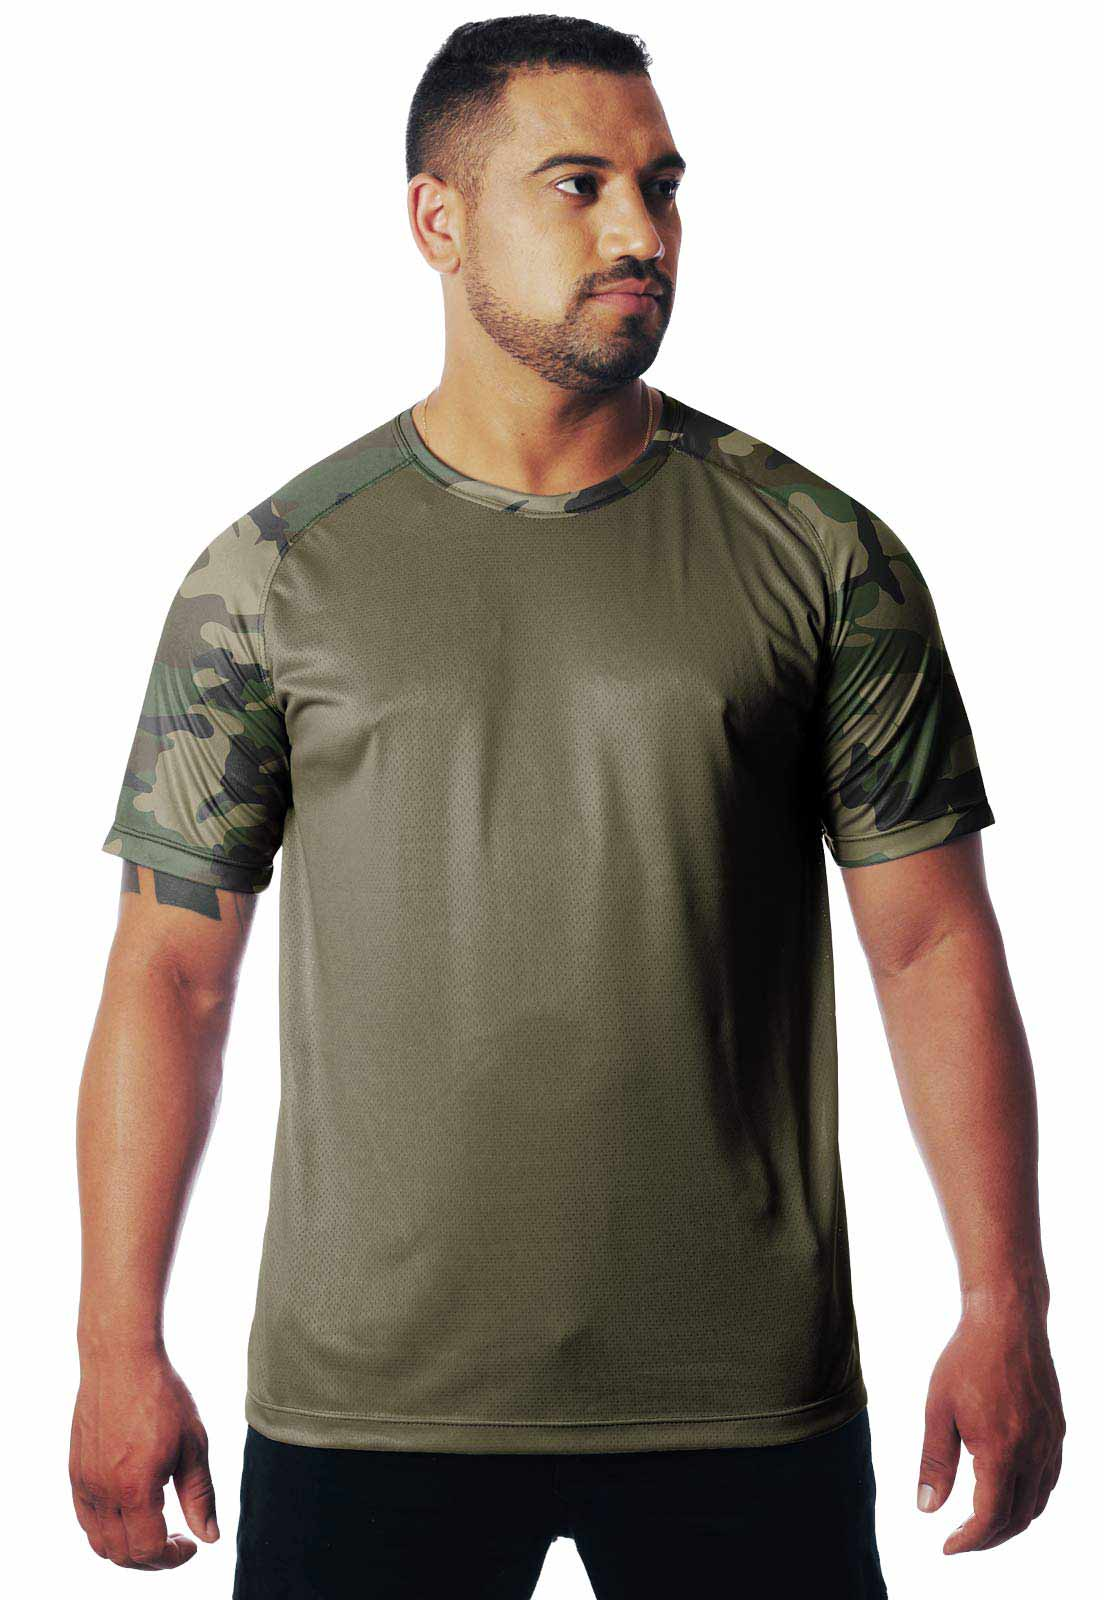 CAMISETA CAMUFLADA WOODLAND DIA 01 MANGA CURTA MASCULINA  - REAL HUNTER OUTDOORS